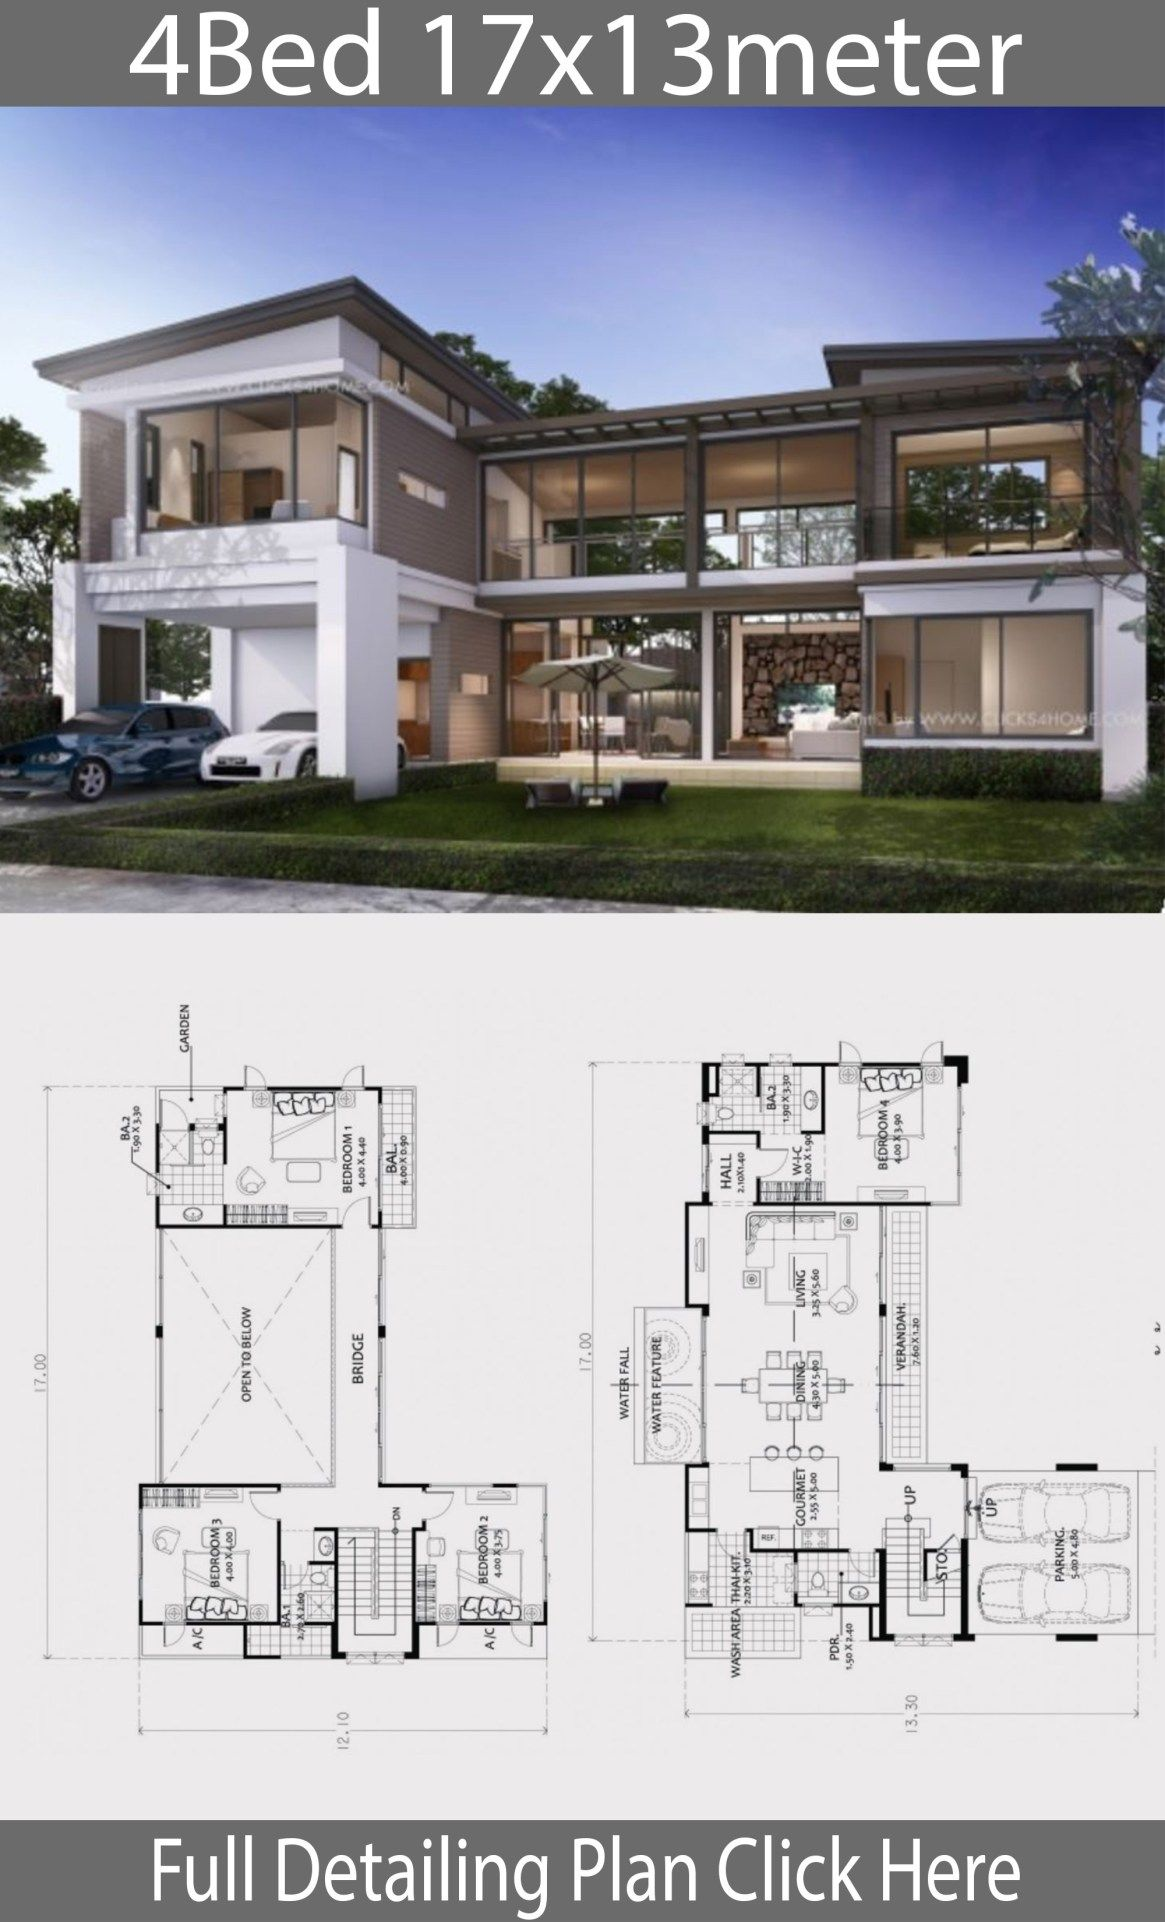 Home Design Plan 17x13m With 4 Bedrooms Home Design With Plansearch Beautiful House Plans House Layouts Modern House Design